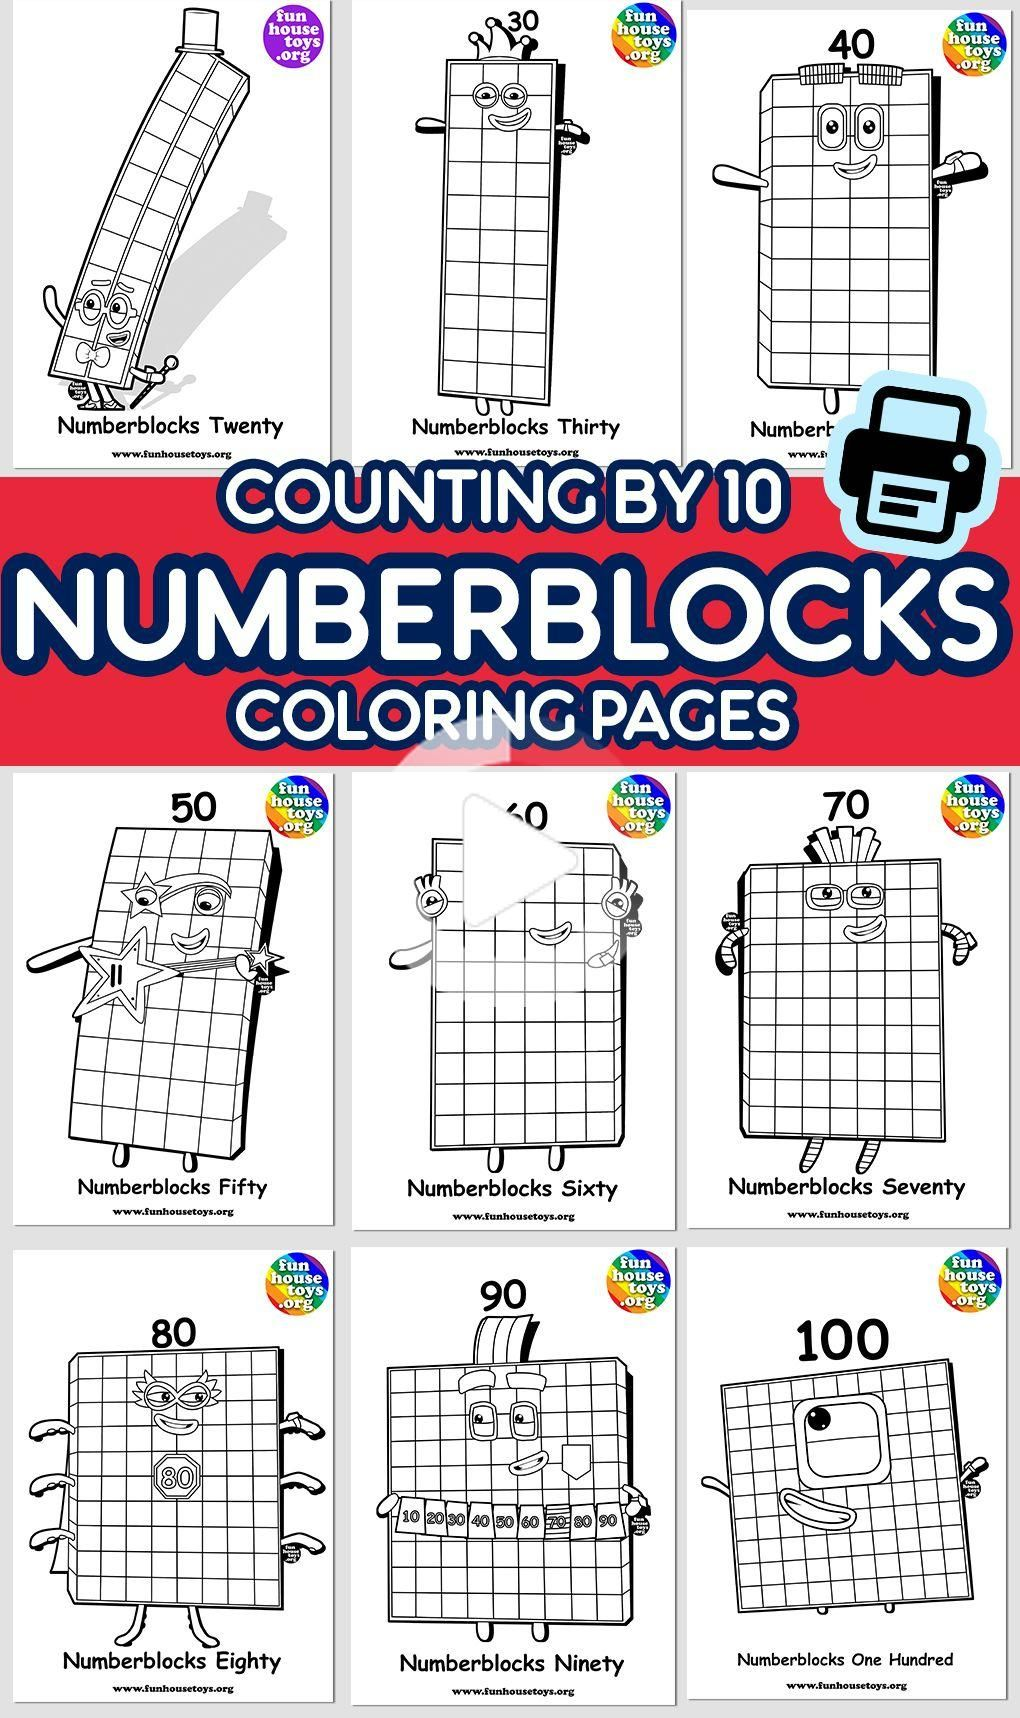 New Numberblocks 100 available as Coloring Printable for ...